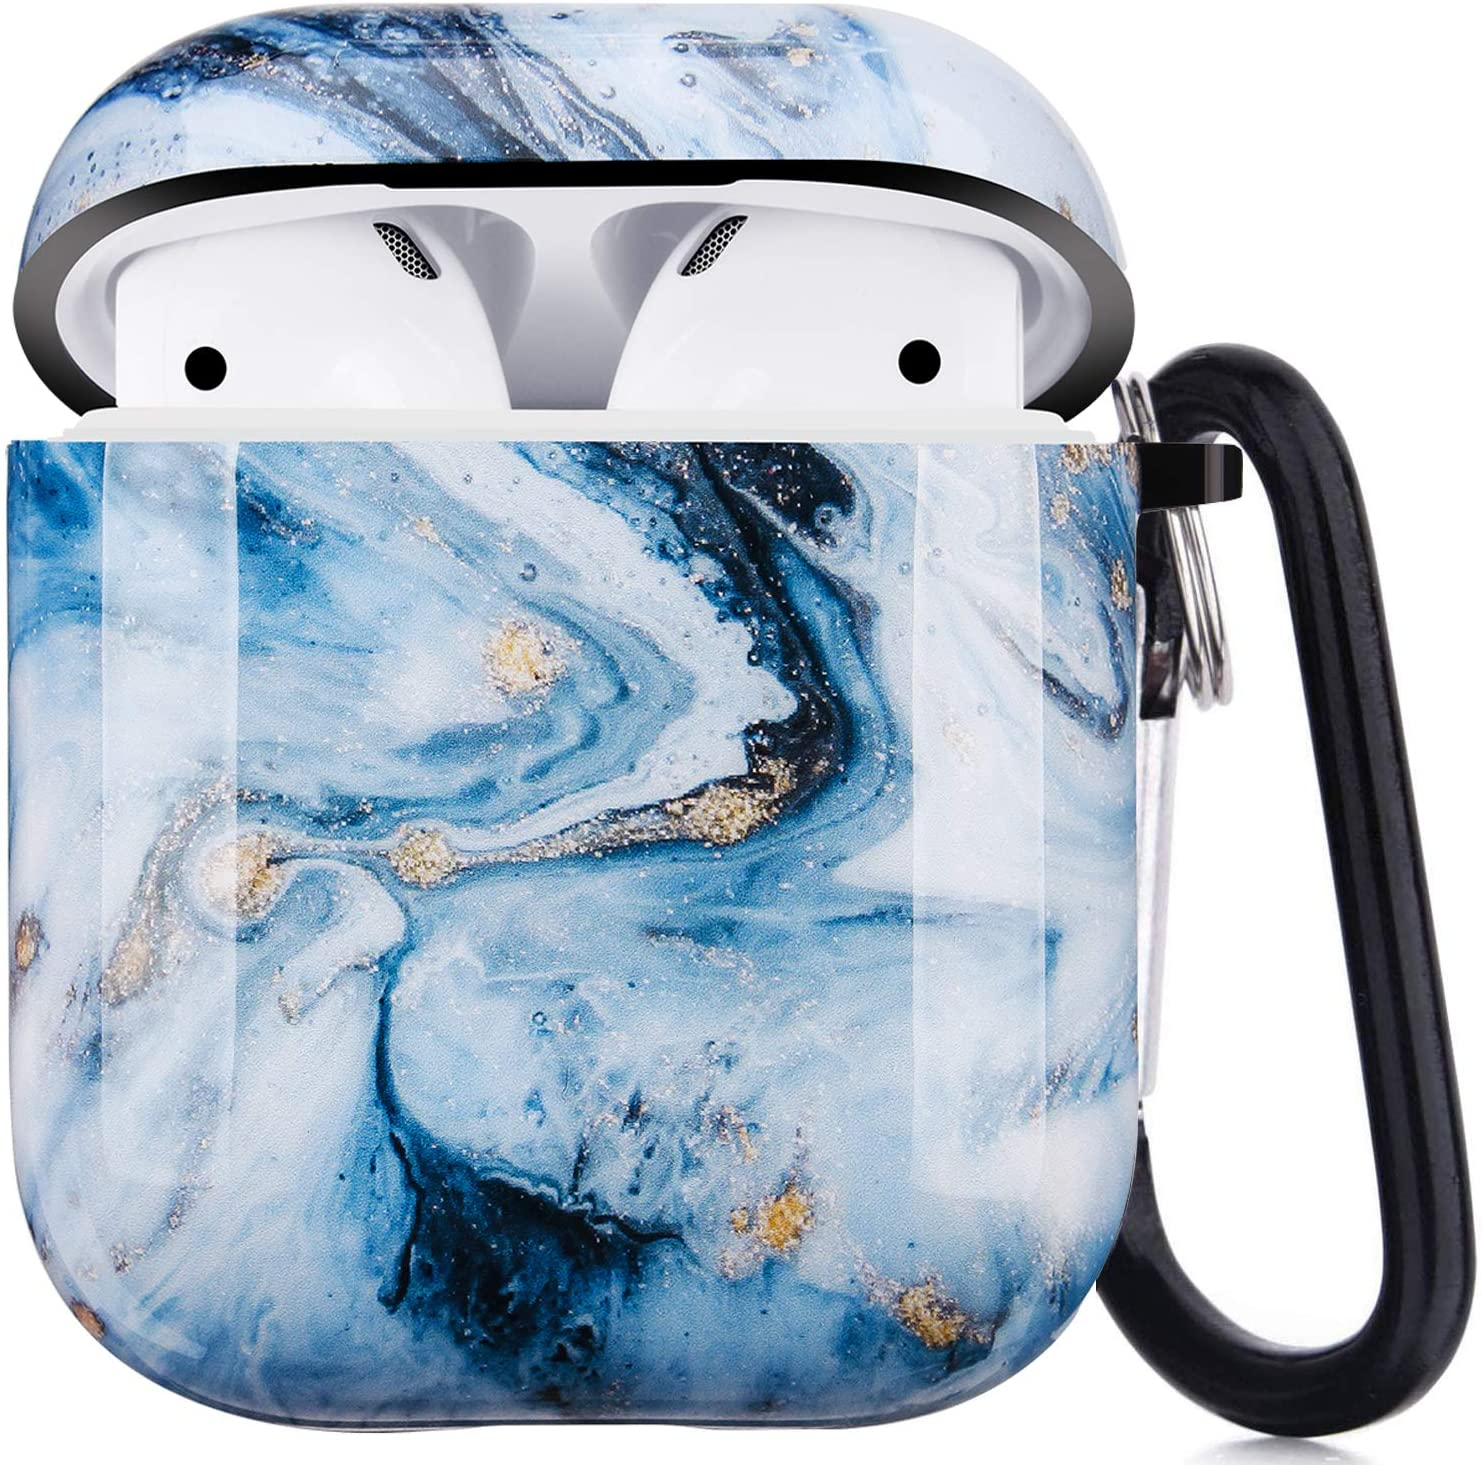 Airpods Case, Airpods Protective Hard Case Cover with Keychain Compatible with AirPods 2/1 Cute Girls Men Durable Shockproof Anti Lost Case for AirPods Charging Case (Ice Blue Marble)